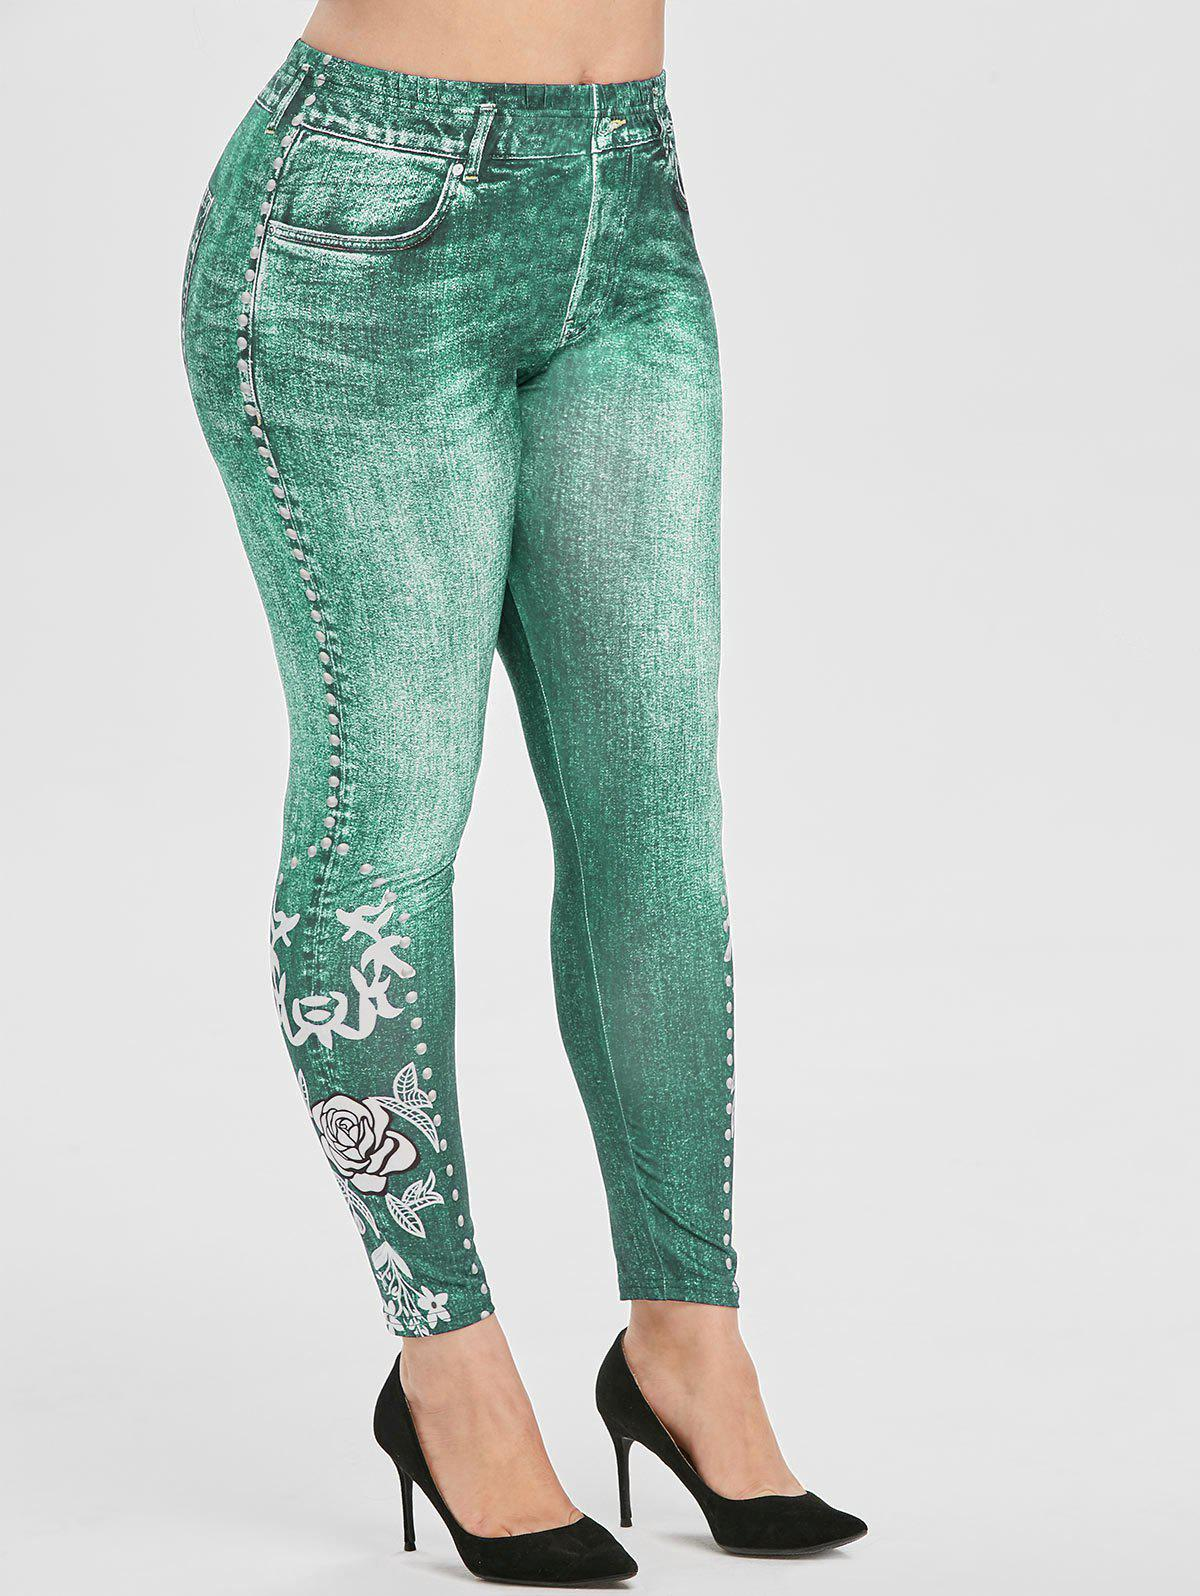 Plus Size Floral Print High Rise Skinny Jeggings - LIGHT SEA GREEN 5X